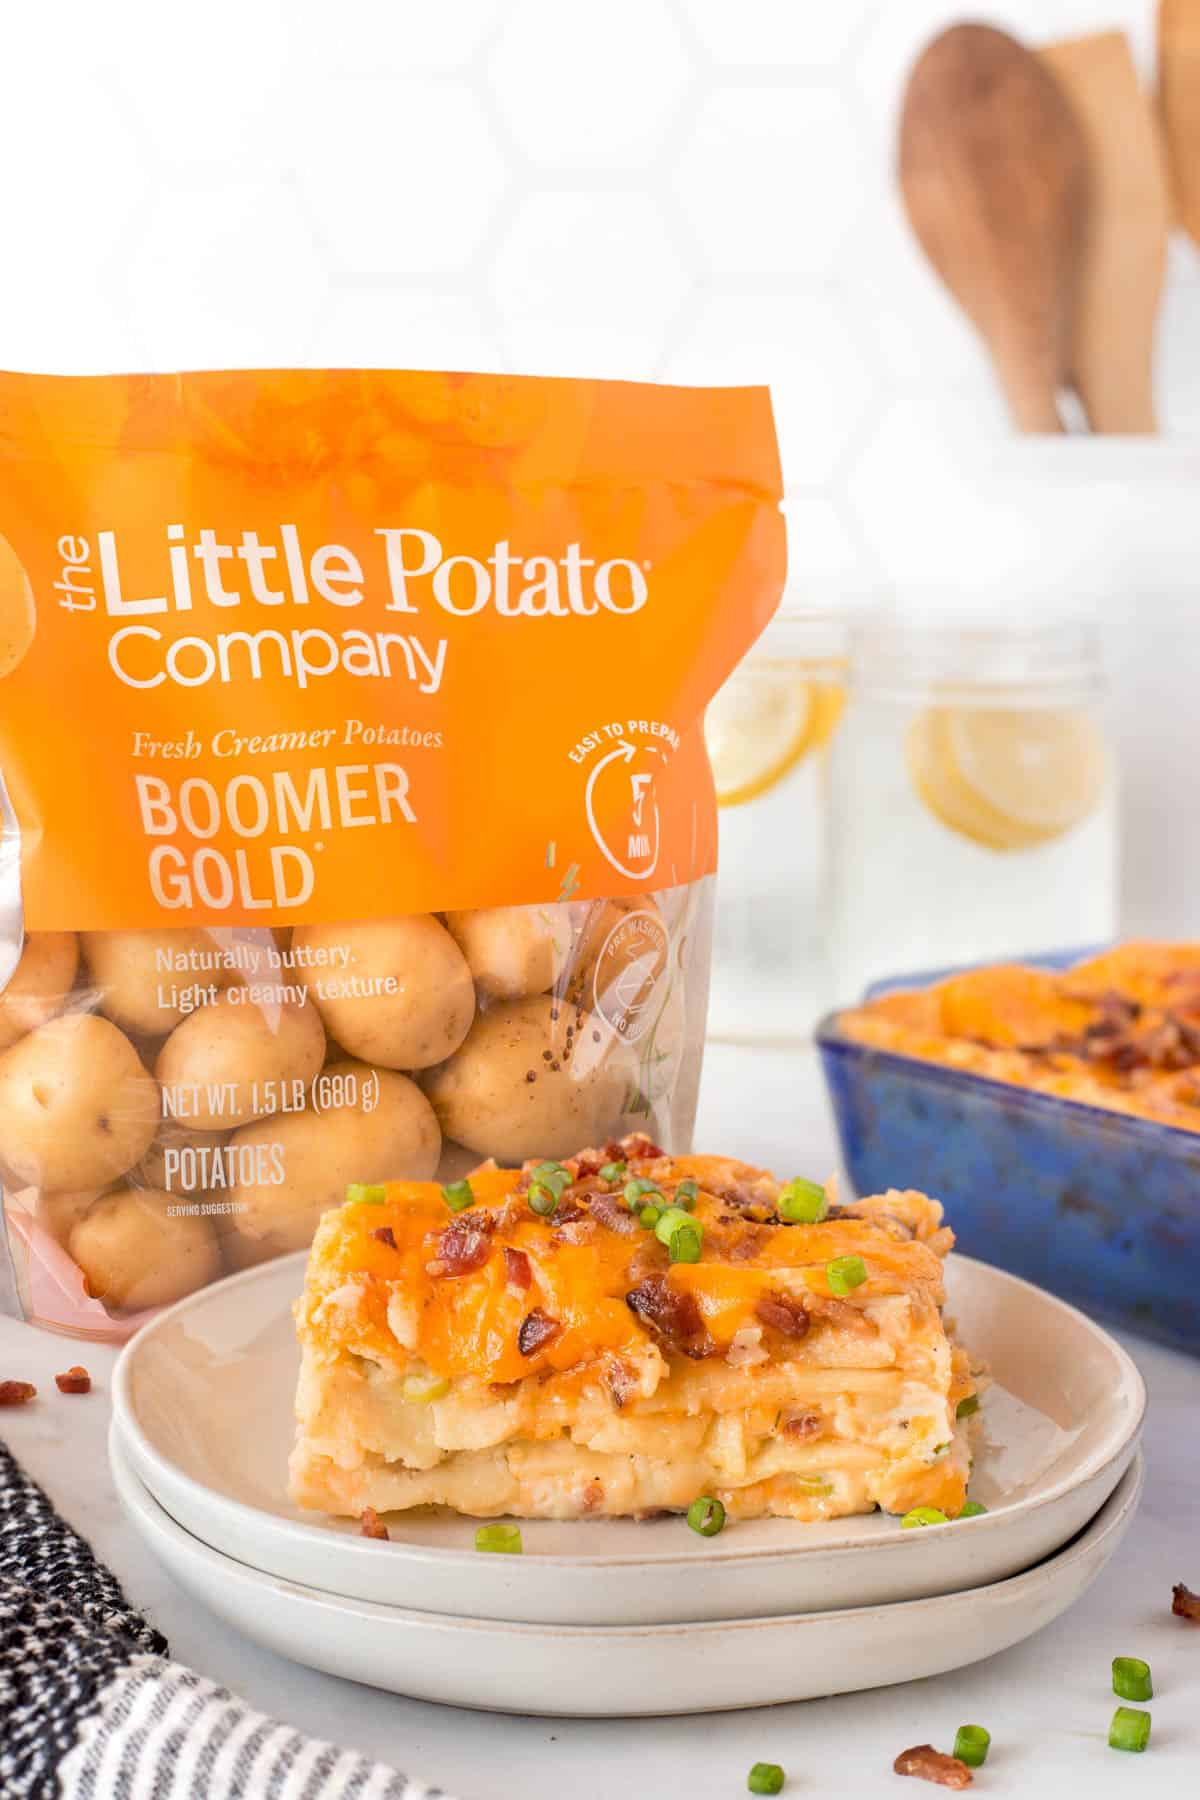 Plated slice of pierogi casserole with a bag of Little Potatoes behind.